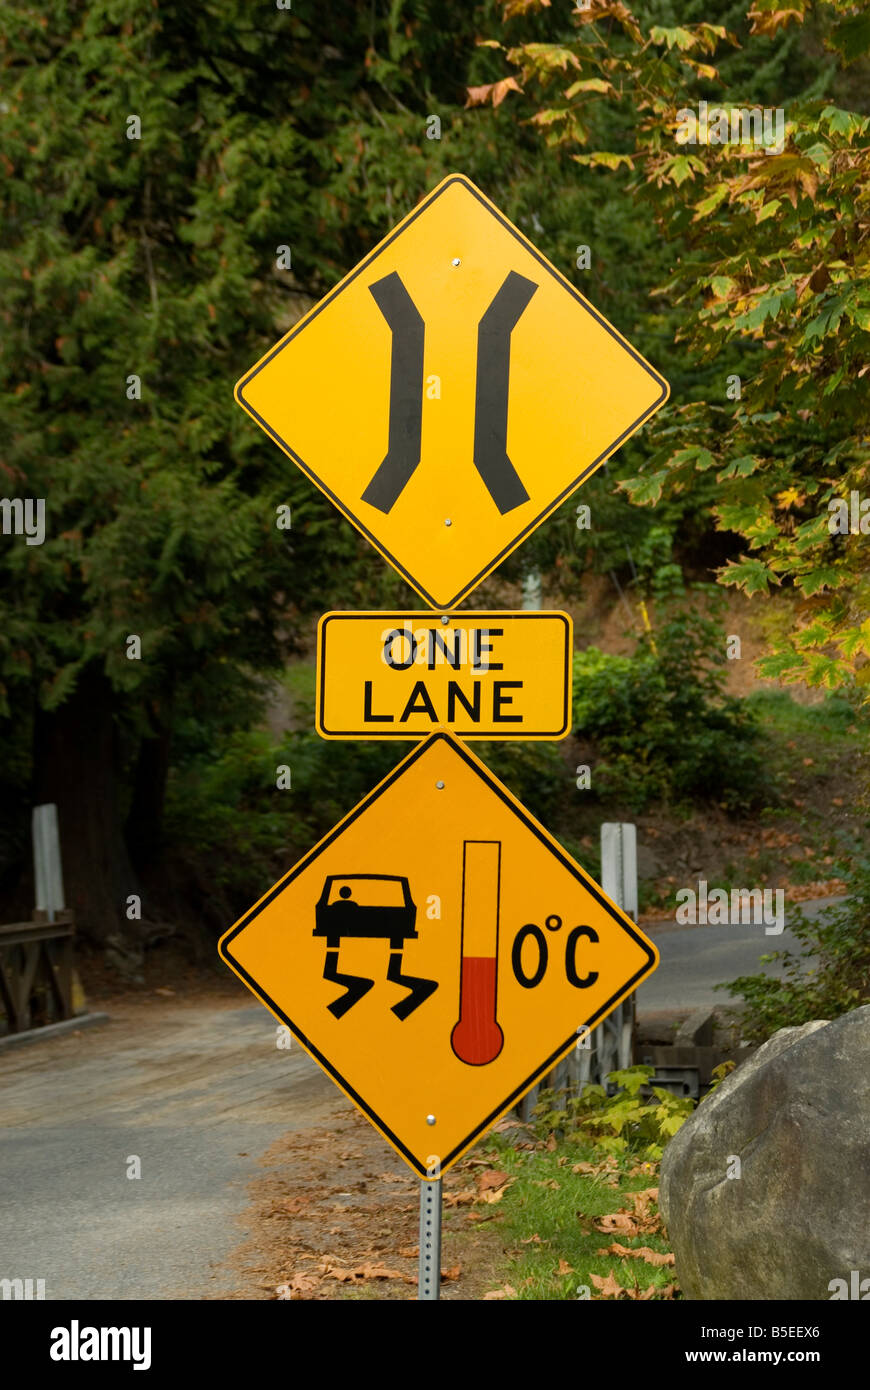 Road Signs Warning of a One Lane Bridge Ahead and Slippery When Cold. - Stock Image